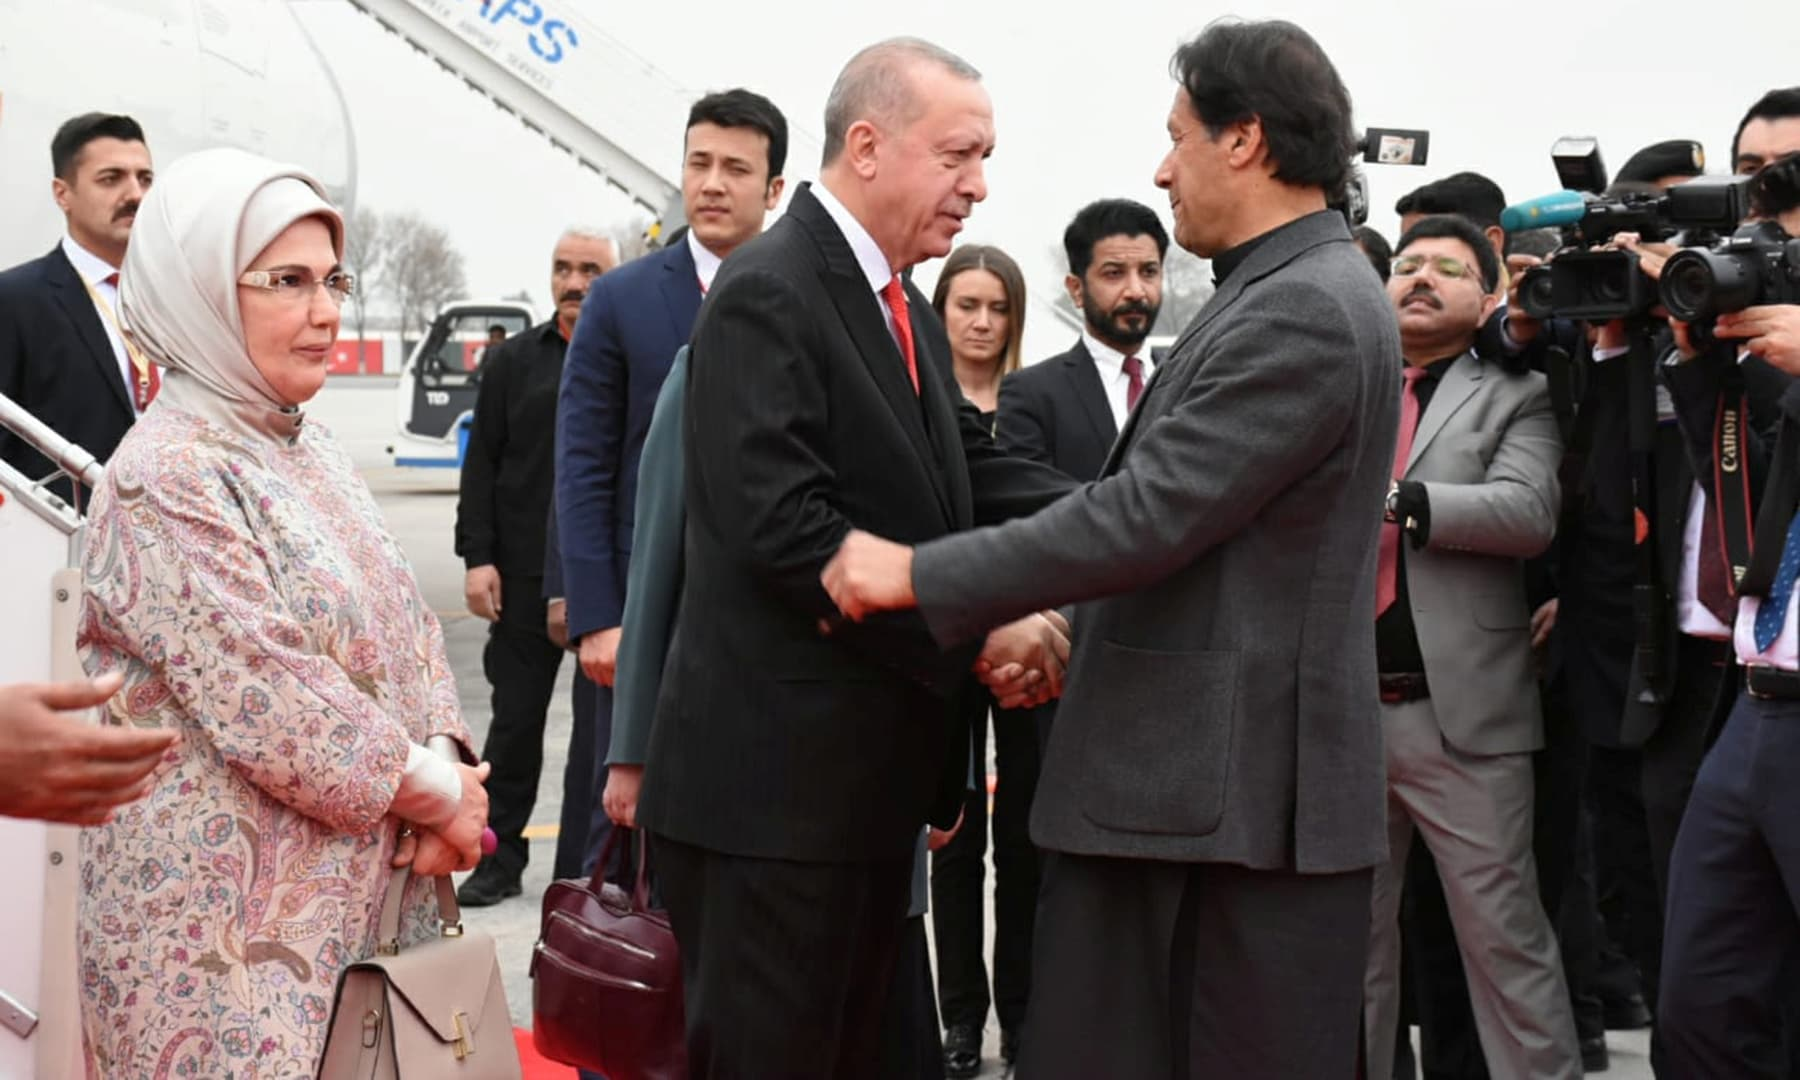 Prime Minister Imran Khan receives Turkish President Tayyip Erdogan on his arrival in Islamabad, February 13. — Reuters